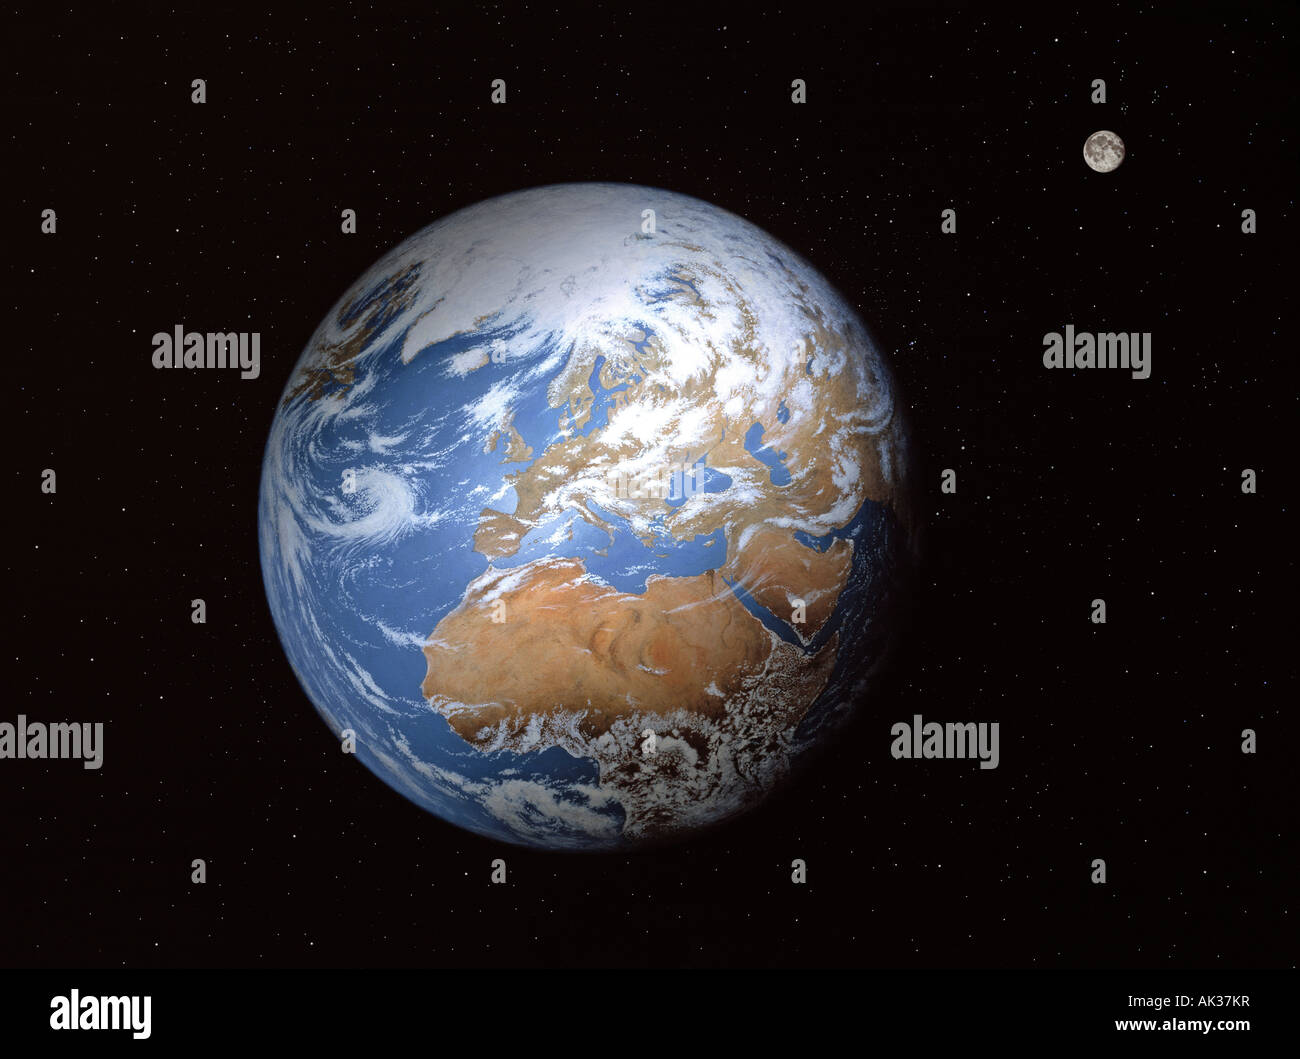 Painting of planet earth showing the Arctic, Europe, Middle East and Africa with the moon. - Stock Image